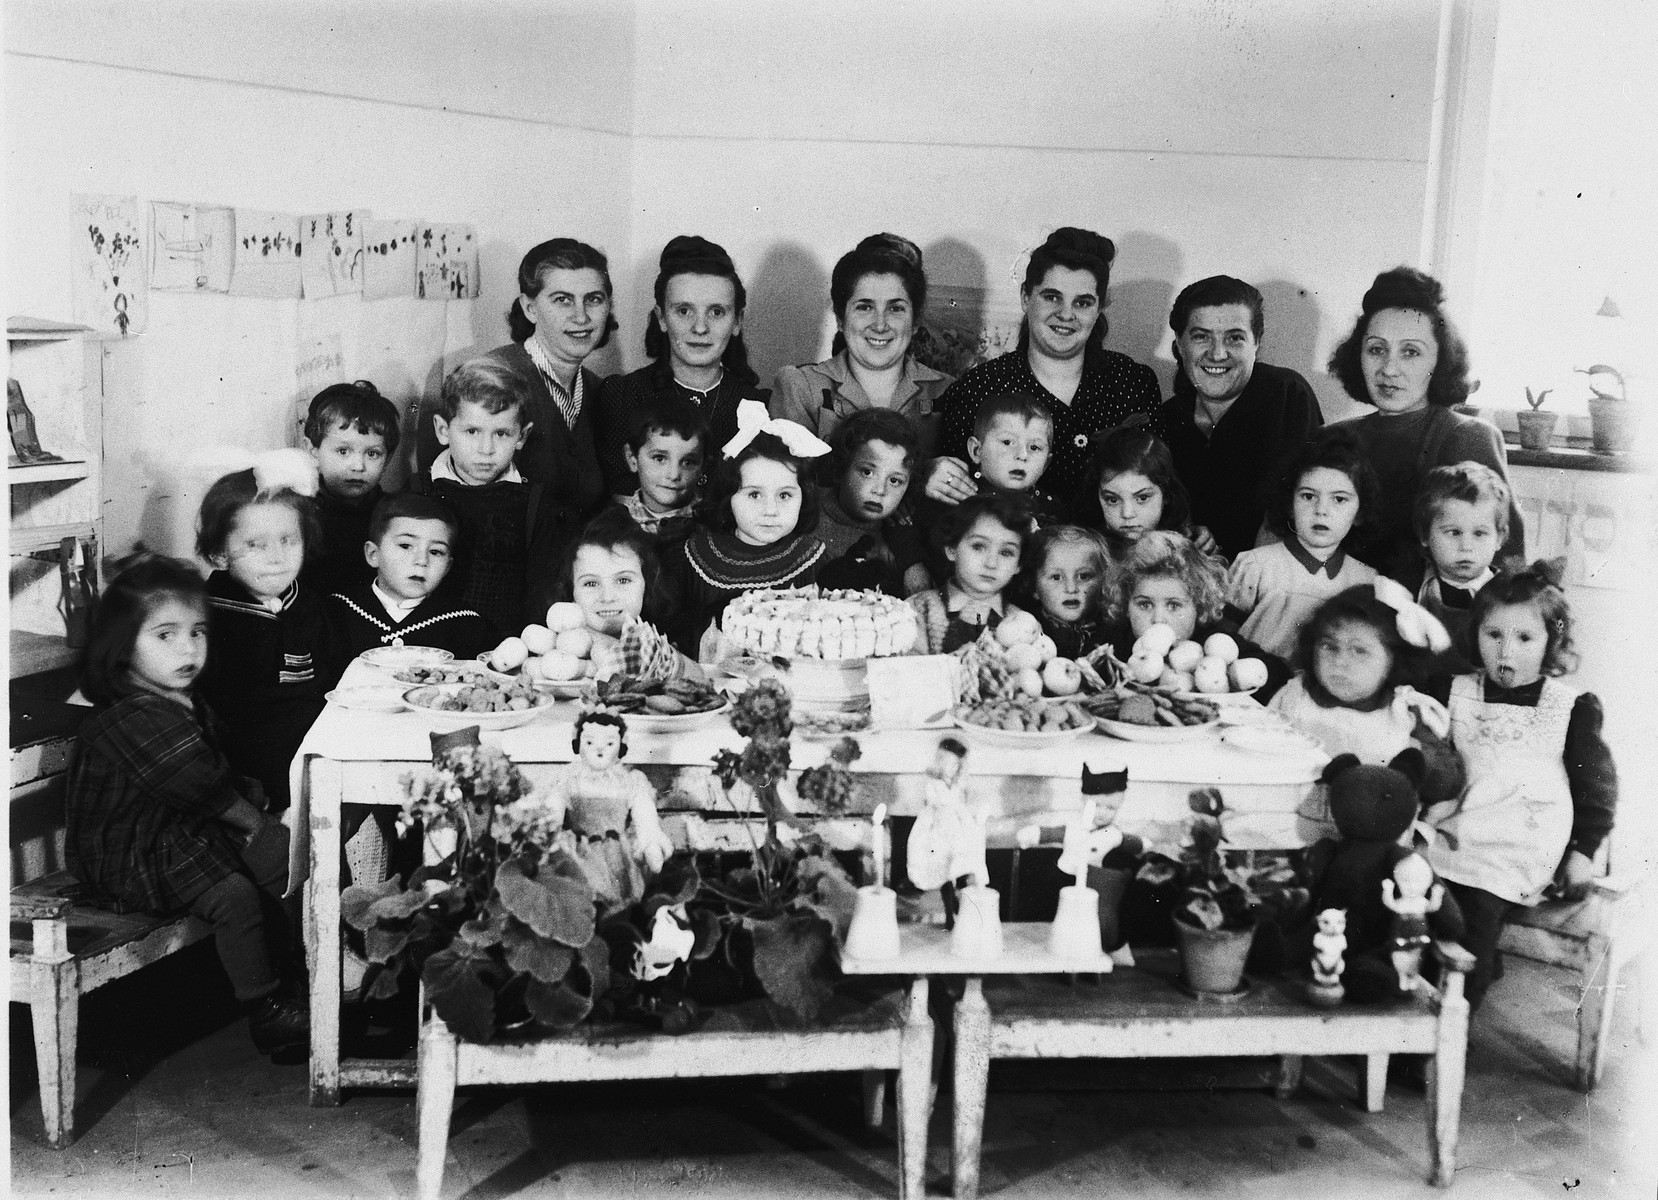 Young children and their dolls gather around a table to celebrate a birthday in the Wasseralfingen DP camp.  Among those pictured is Pauline Slepian.  Also pictured is Fagala Brenner (second row, third from the right).